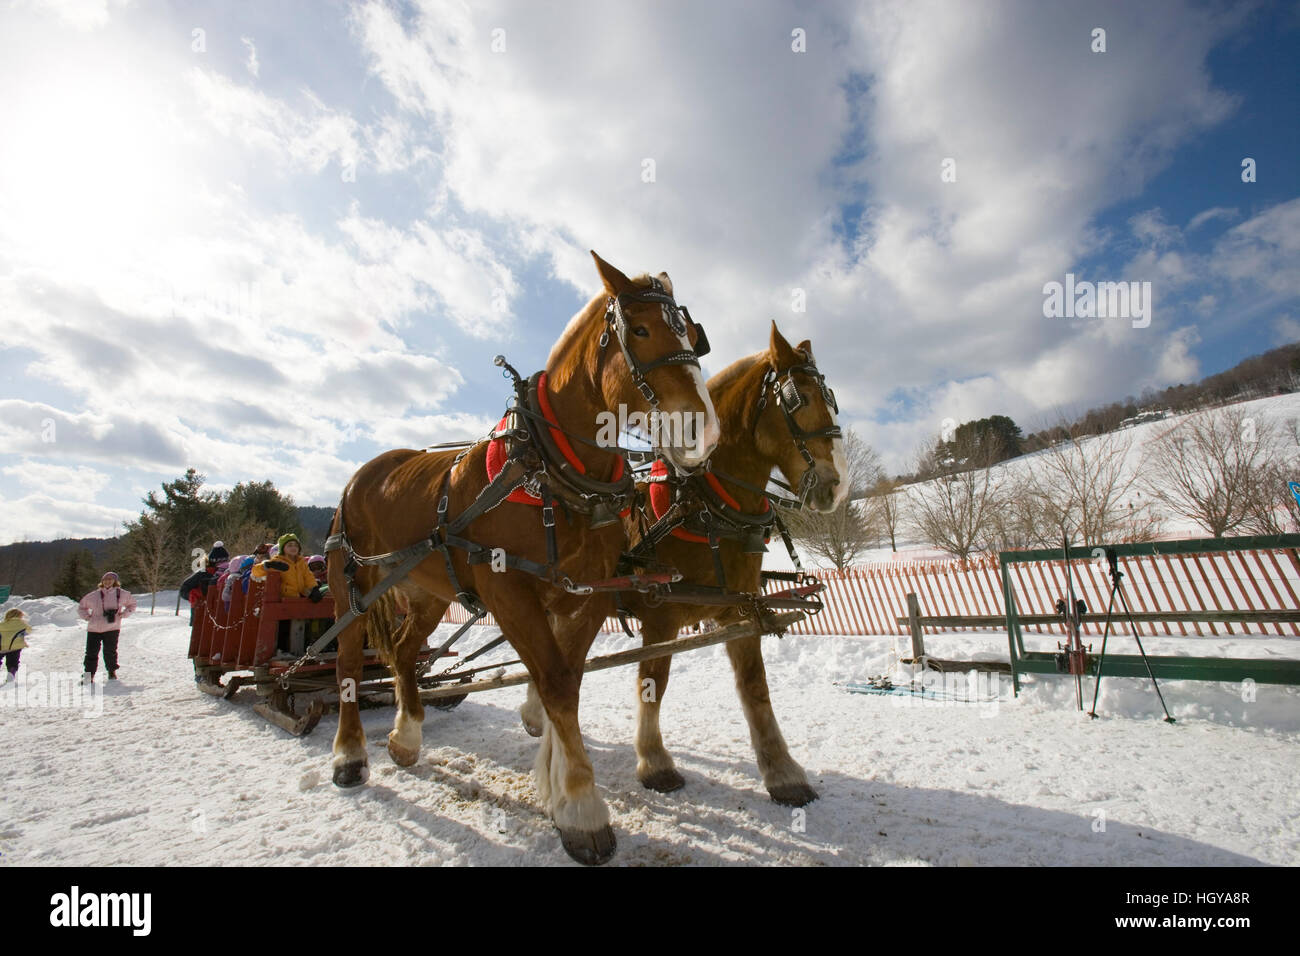 A horse drawn sleigh carries skiers in Quechee, Vermont. Stock Photo